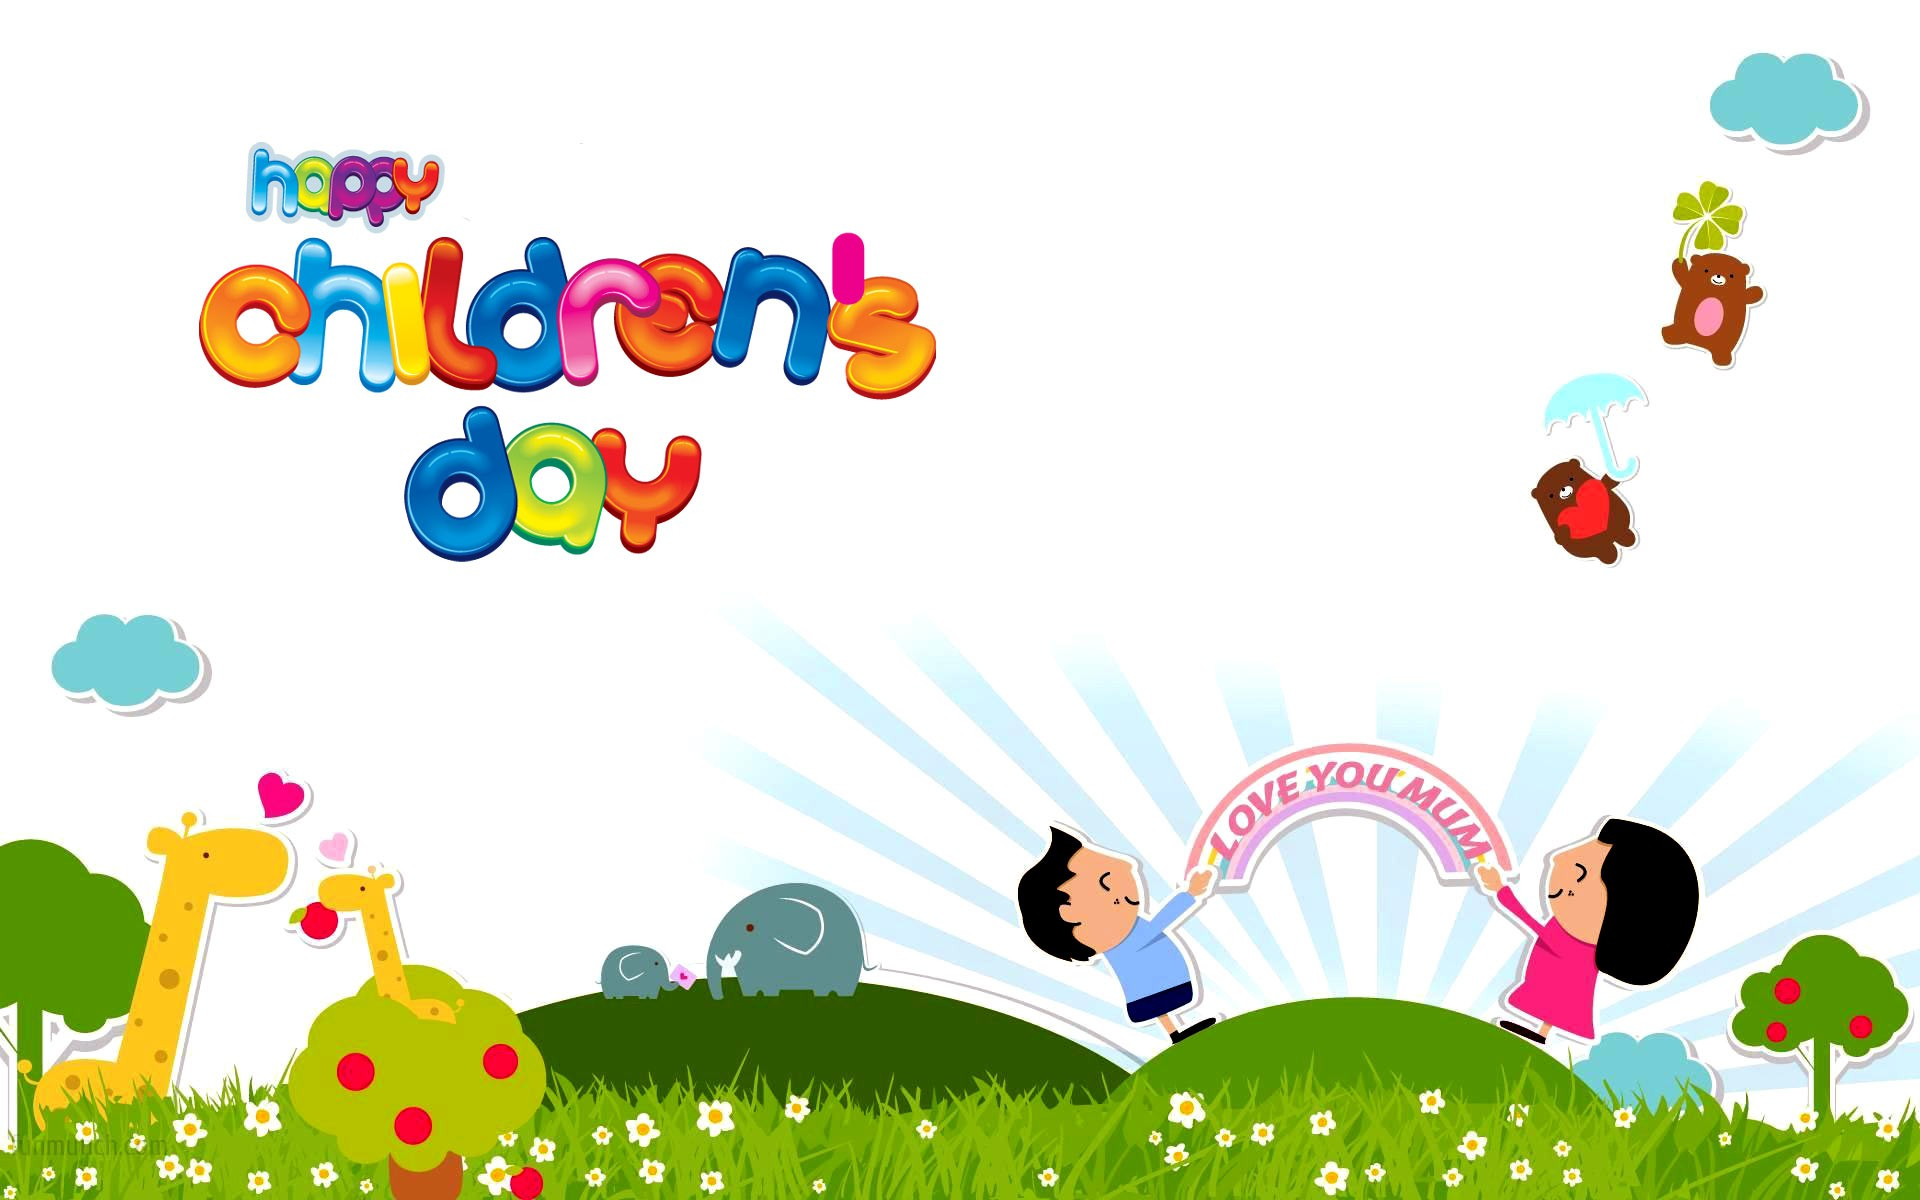 download childrens day hd image wallpaper - Kids Images Free Download